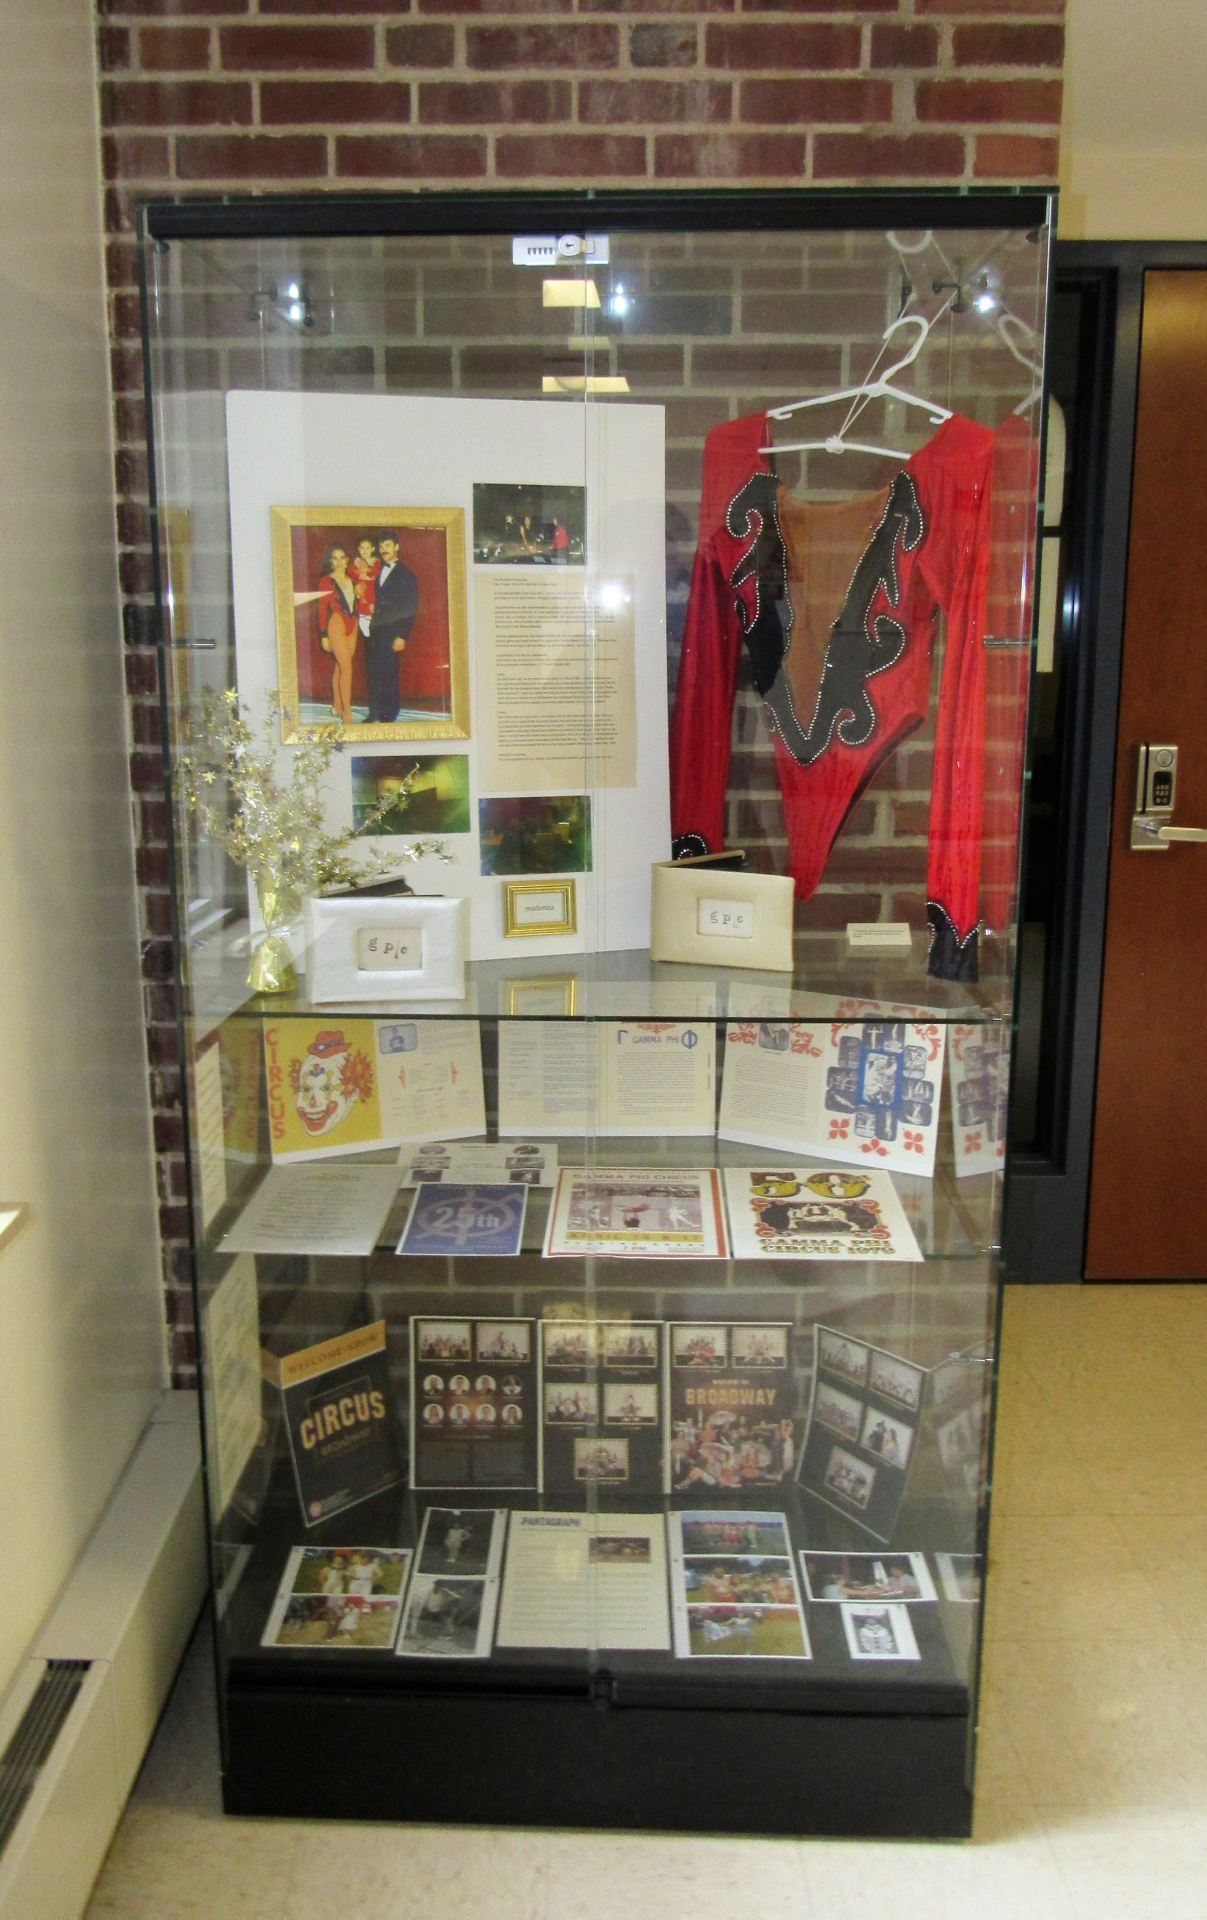 A photo of the glass case in the exhibit, which features the garment of a former Gamma Phi Circus member and other old relics such as photos and old programs of former circus performers.